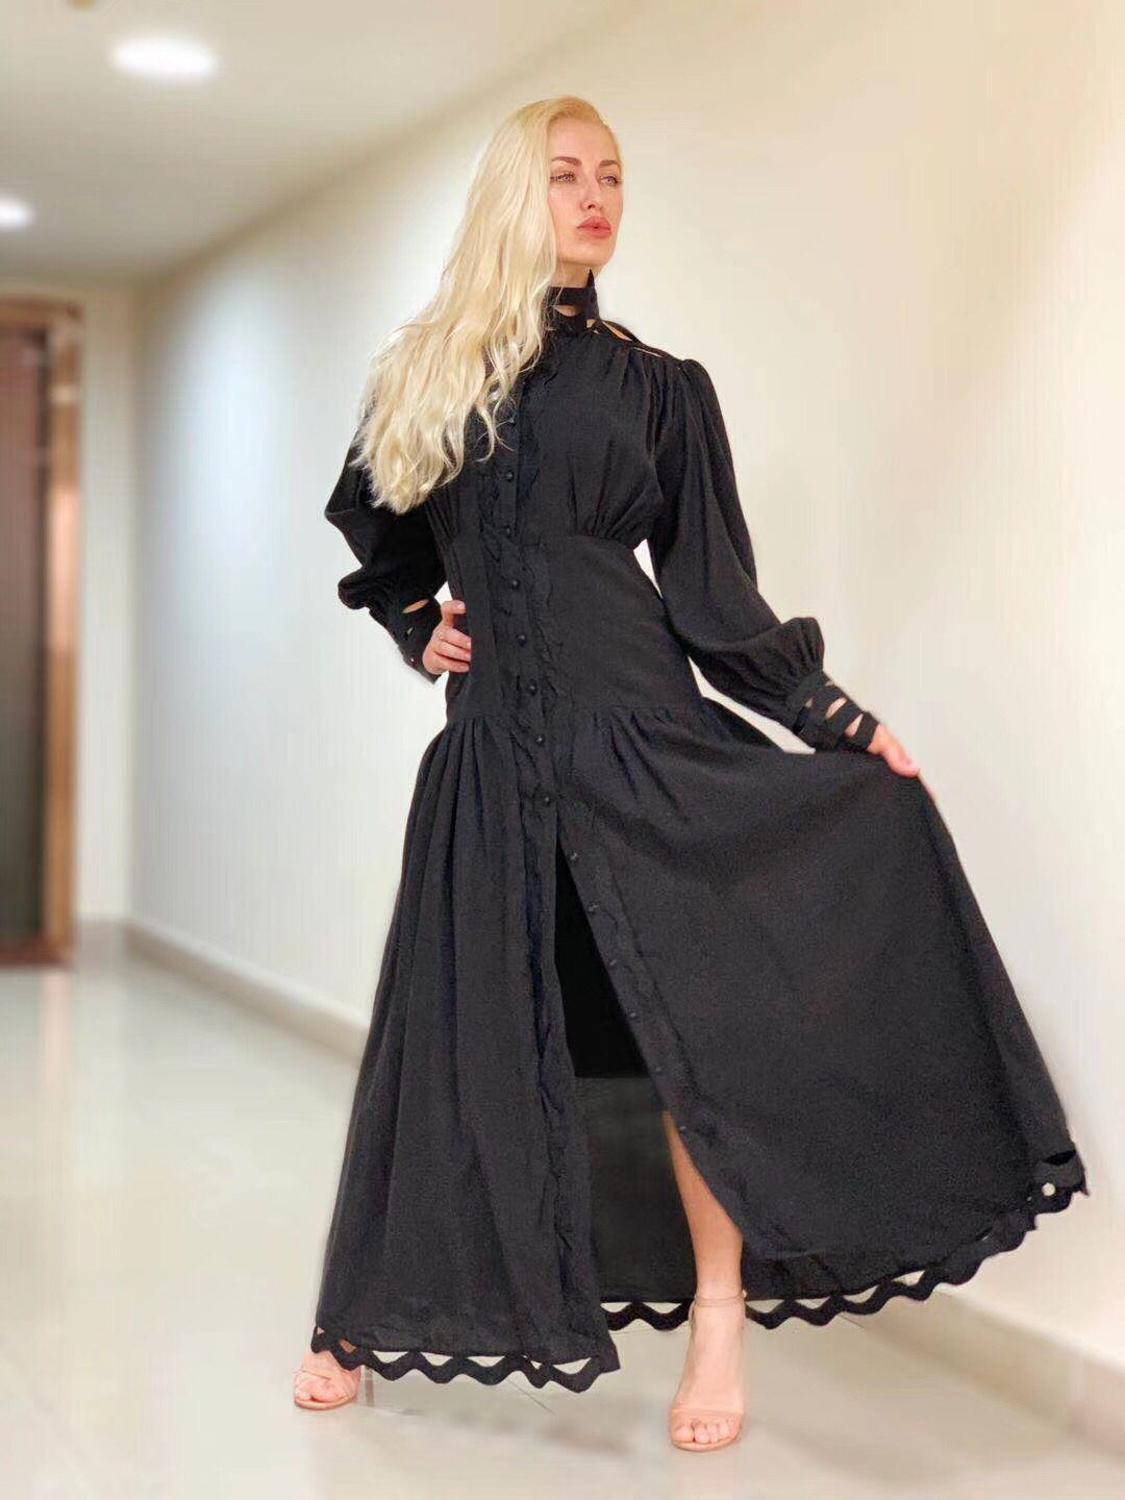 2019 New Fashion Women Cotton Dress Long Puff Sleeve Stand Collar Hollow Out White Lace Dress